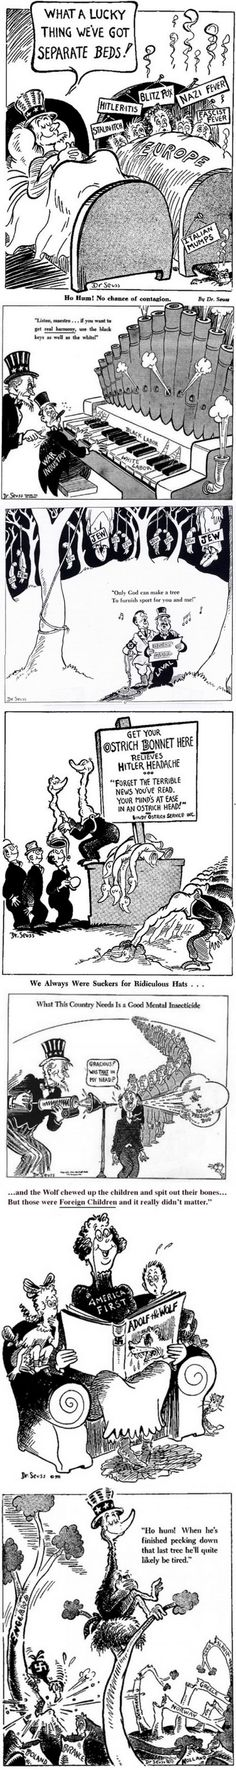 Seuss used to draw political cartoons as well Dr. Suess used to draw political cartoons as wellDr. Suess used to draw political cartoons as well Ap World History, History Memes, History Facts, American History, History Essay, Teaching Us History, Teaching Social Studies, History Teachers, History Classroom